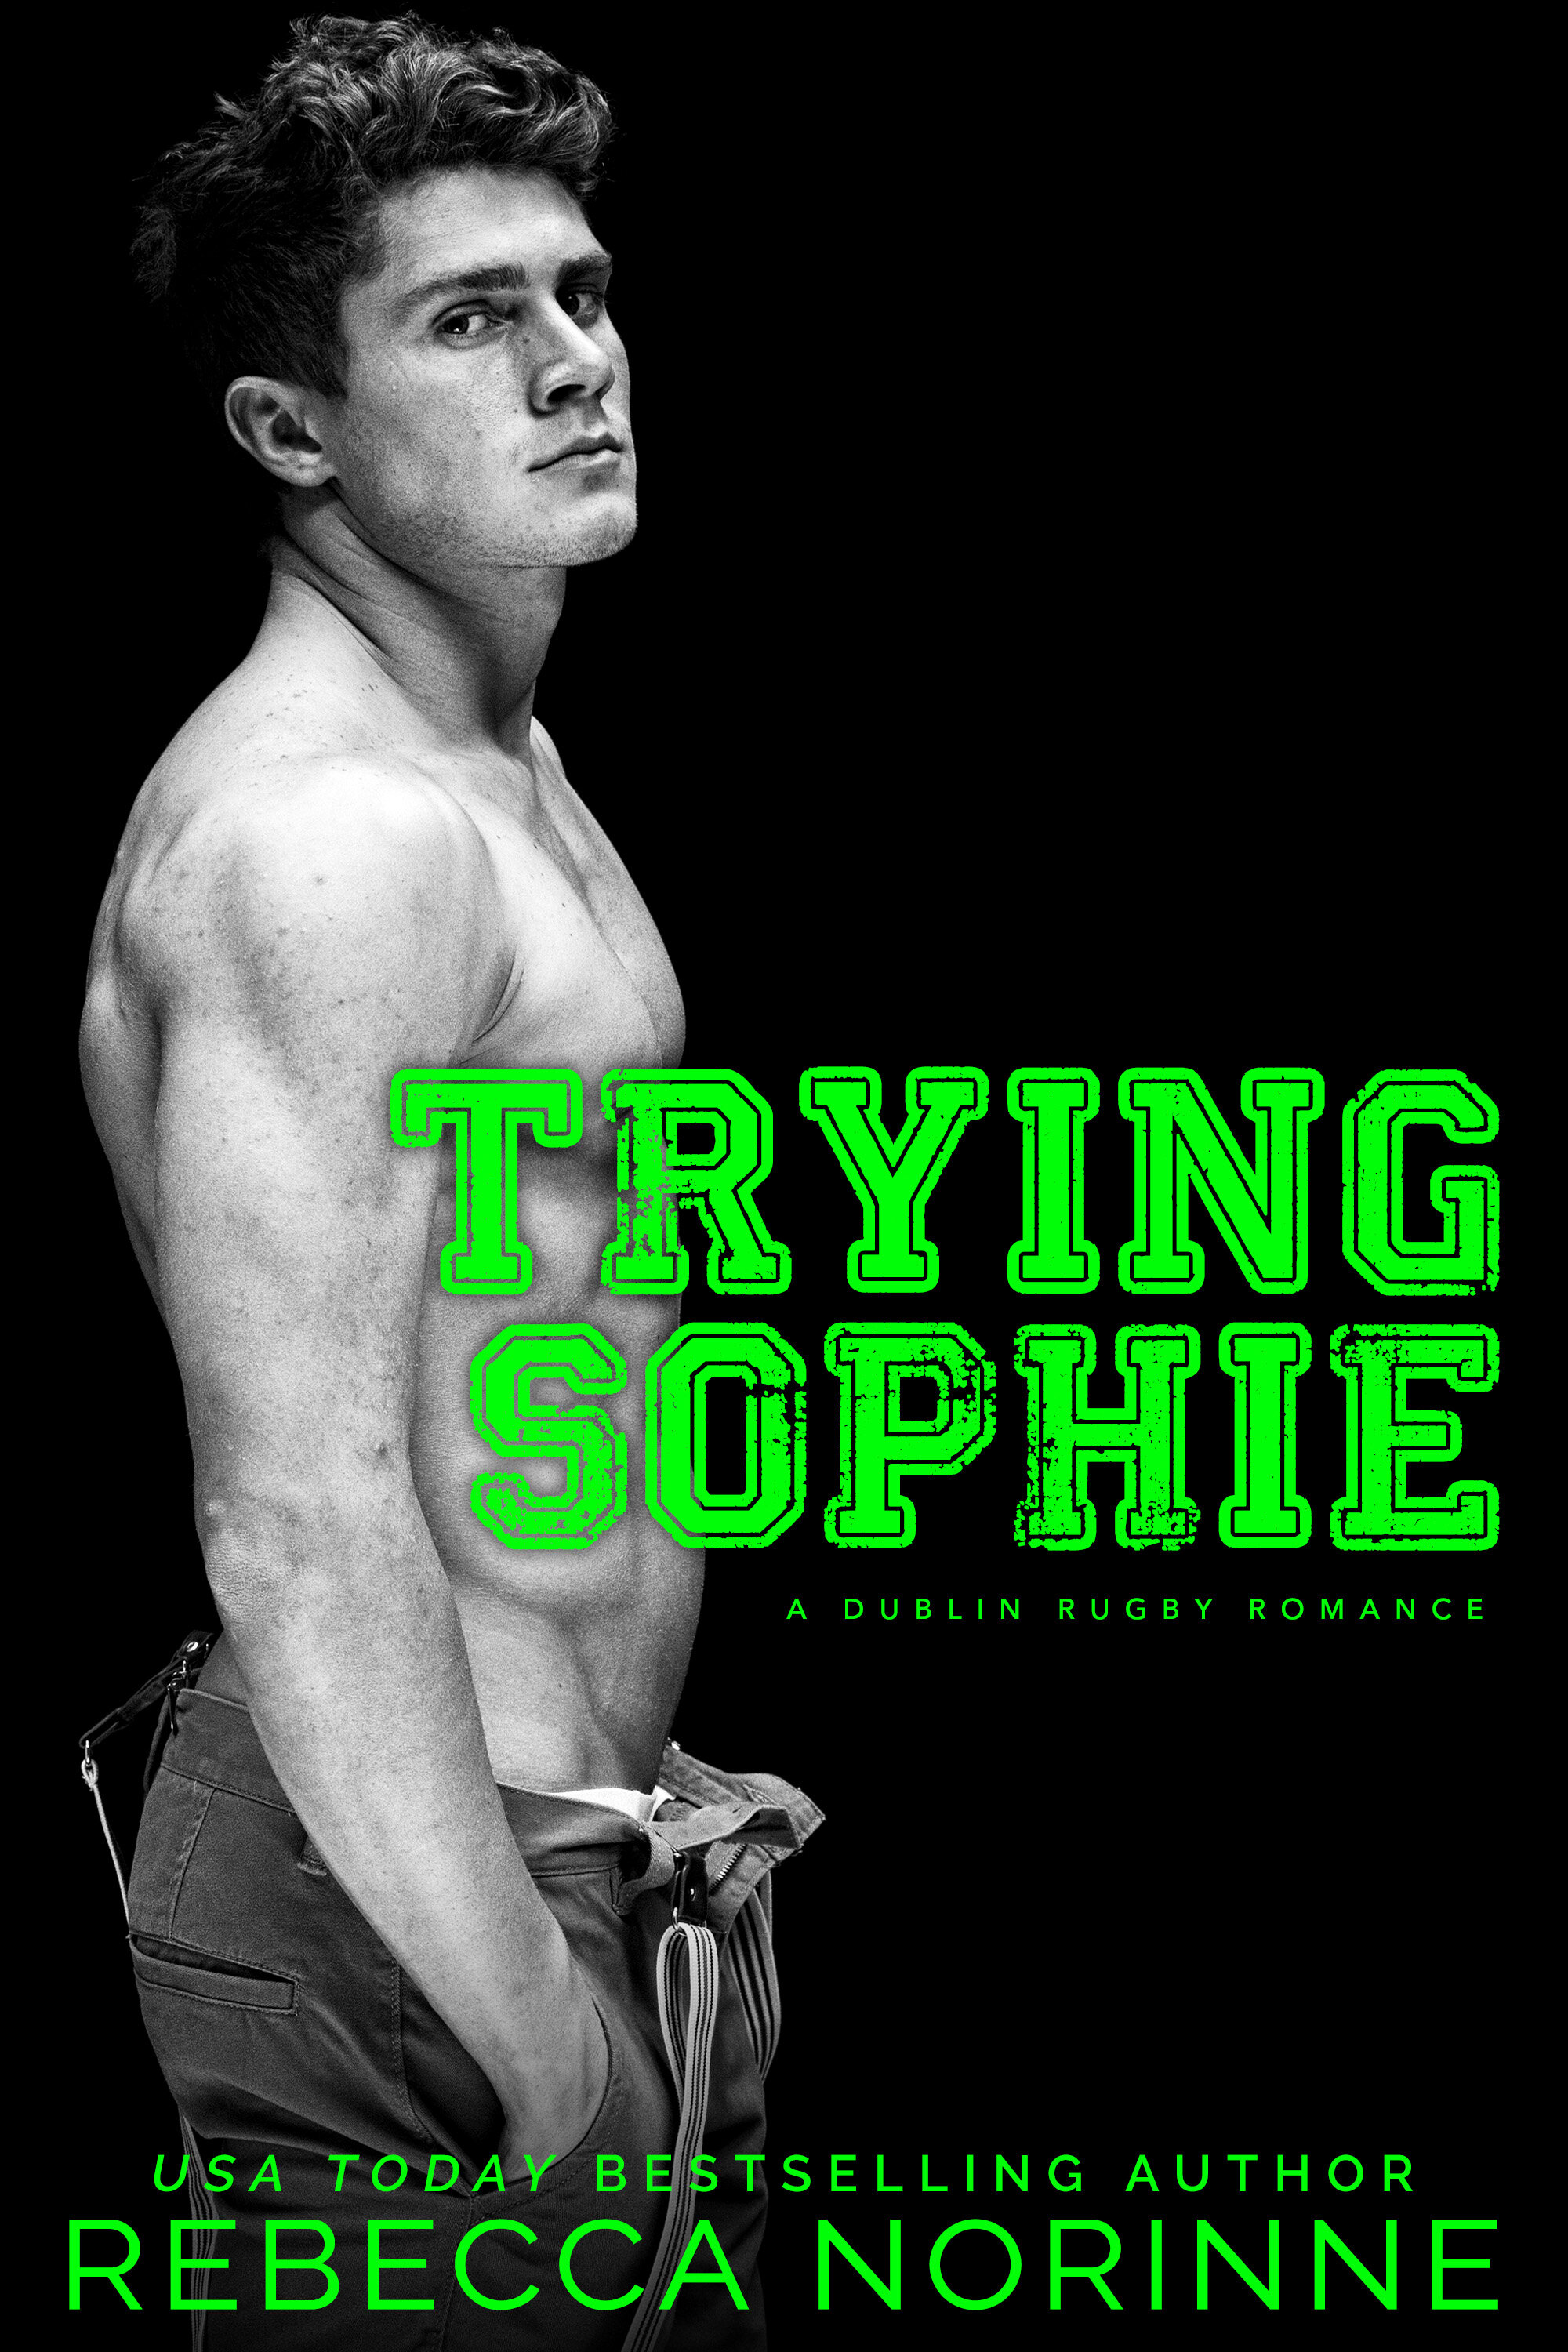 Trying Sophie - I grew up surrounded by professional athletes, so I know better than to date one. Which is why I'm determined not to fall for arrogant rugby star Declan O'Shaughnessy.Except he's nothing like I remember.Gone is the boy who used to torment me, and in his place is a sexy, muscled man that I can't seem to tear my eyes away from. And it's not just his hot, chiseled body that I'm falling for. Underneath all that brash cockiness, he's kind and generous too. But he's looking for forever, and my stay in Dublin is only temporary. So how come when I'm with him it feels a lot like coming home?